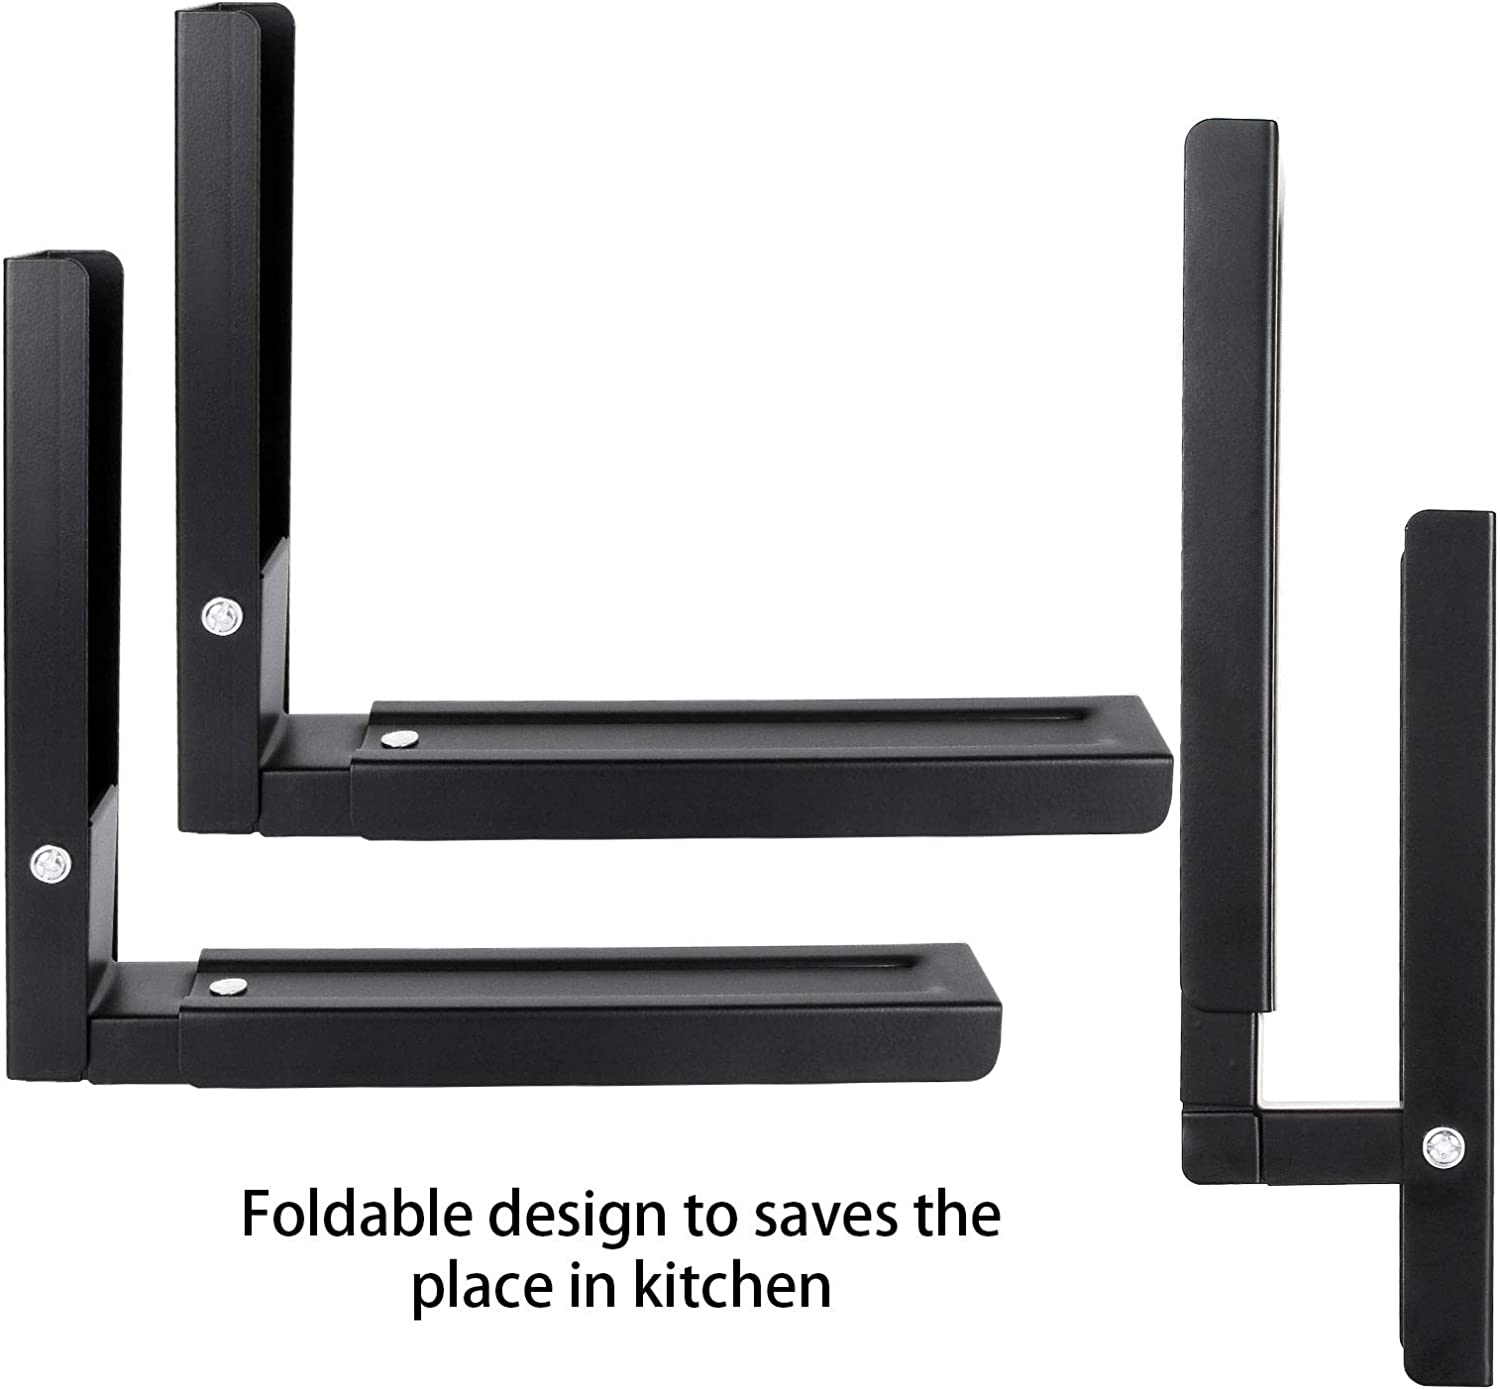 1 Pair Microwave Mounting Bracket, Wall Mounted Microwave Stand Black Kitchen Stretch Oven Stand Adjustable Foldable Microwave Shelf Brackets Rack Load 100 lbs